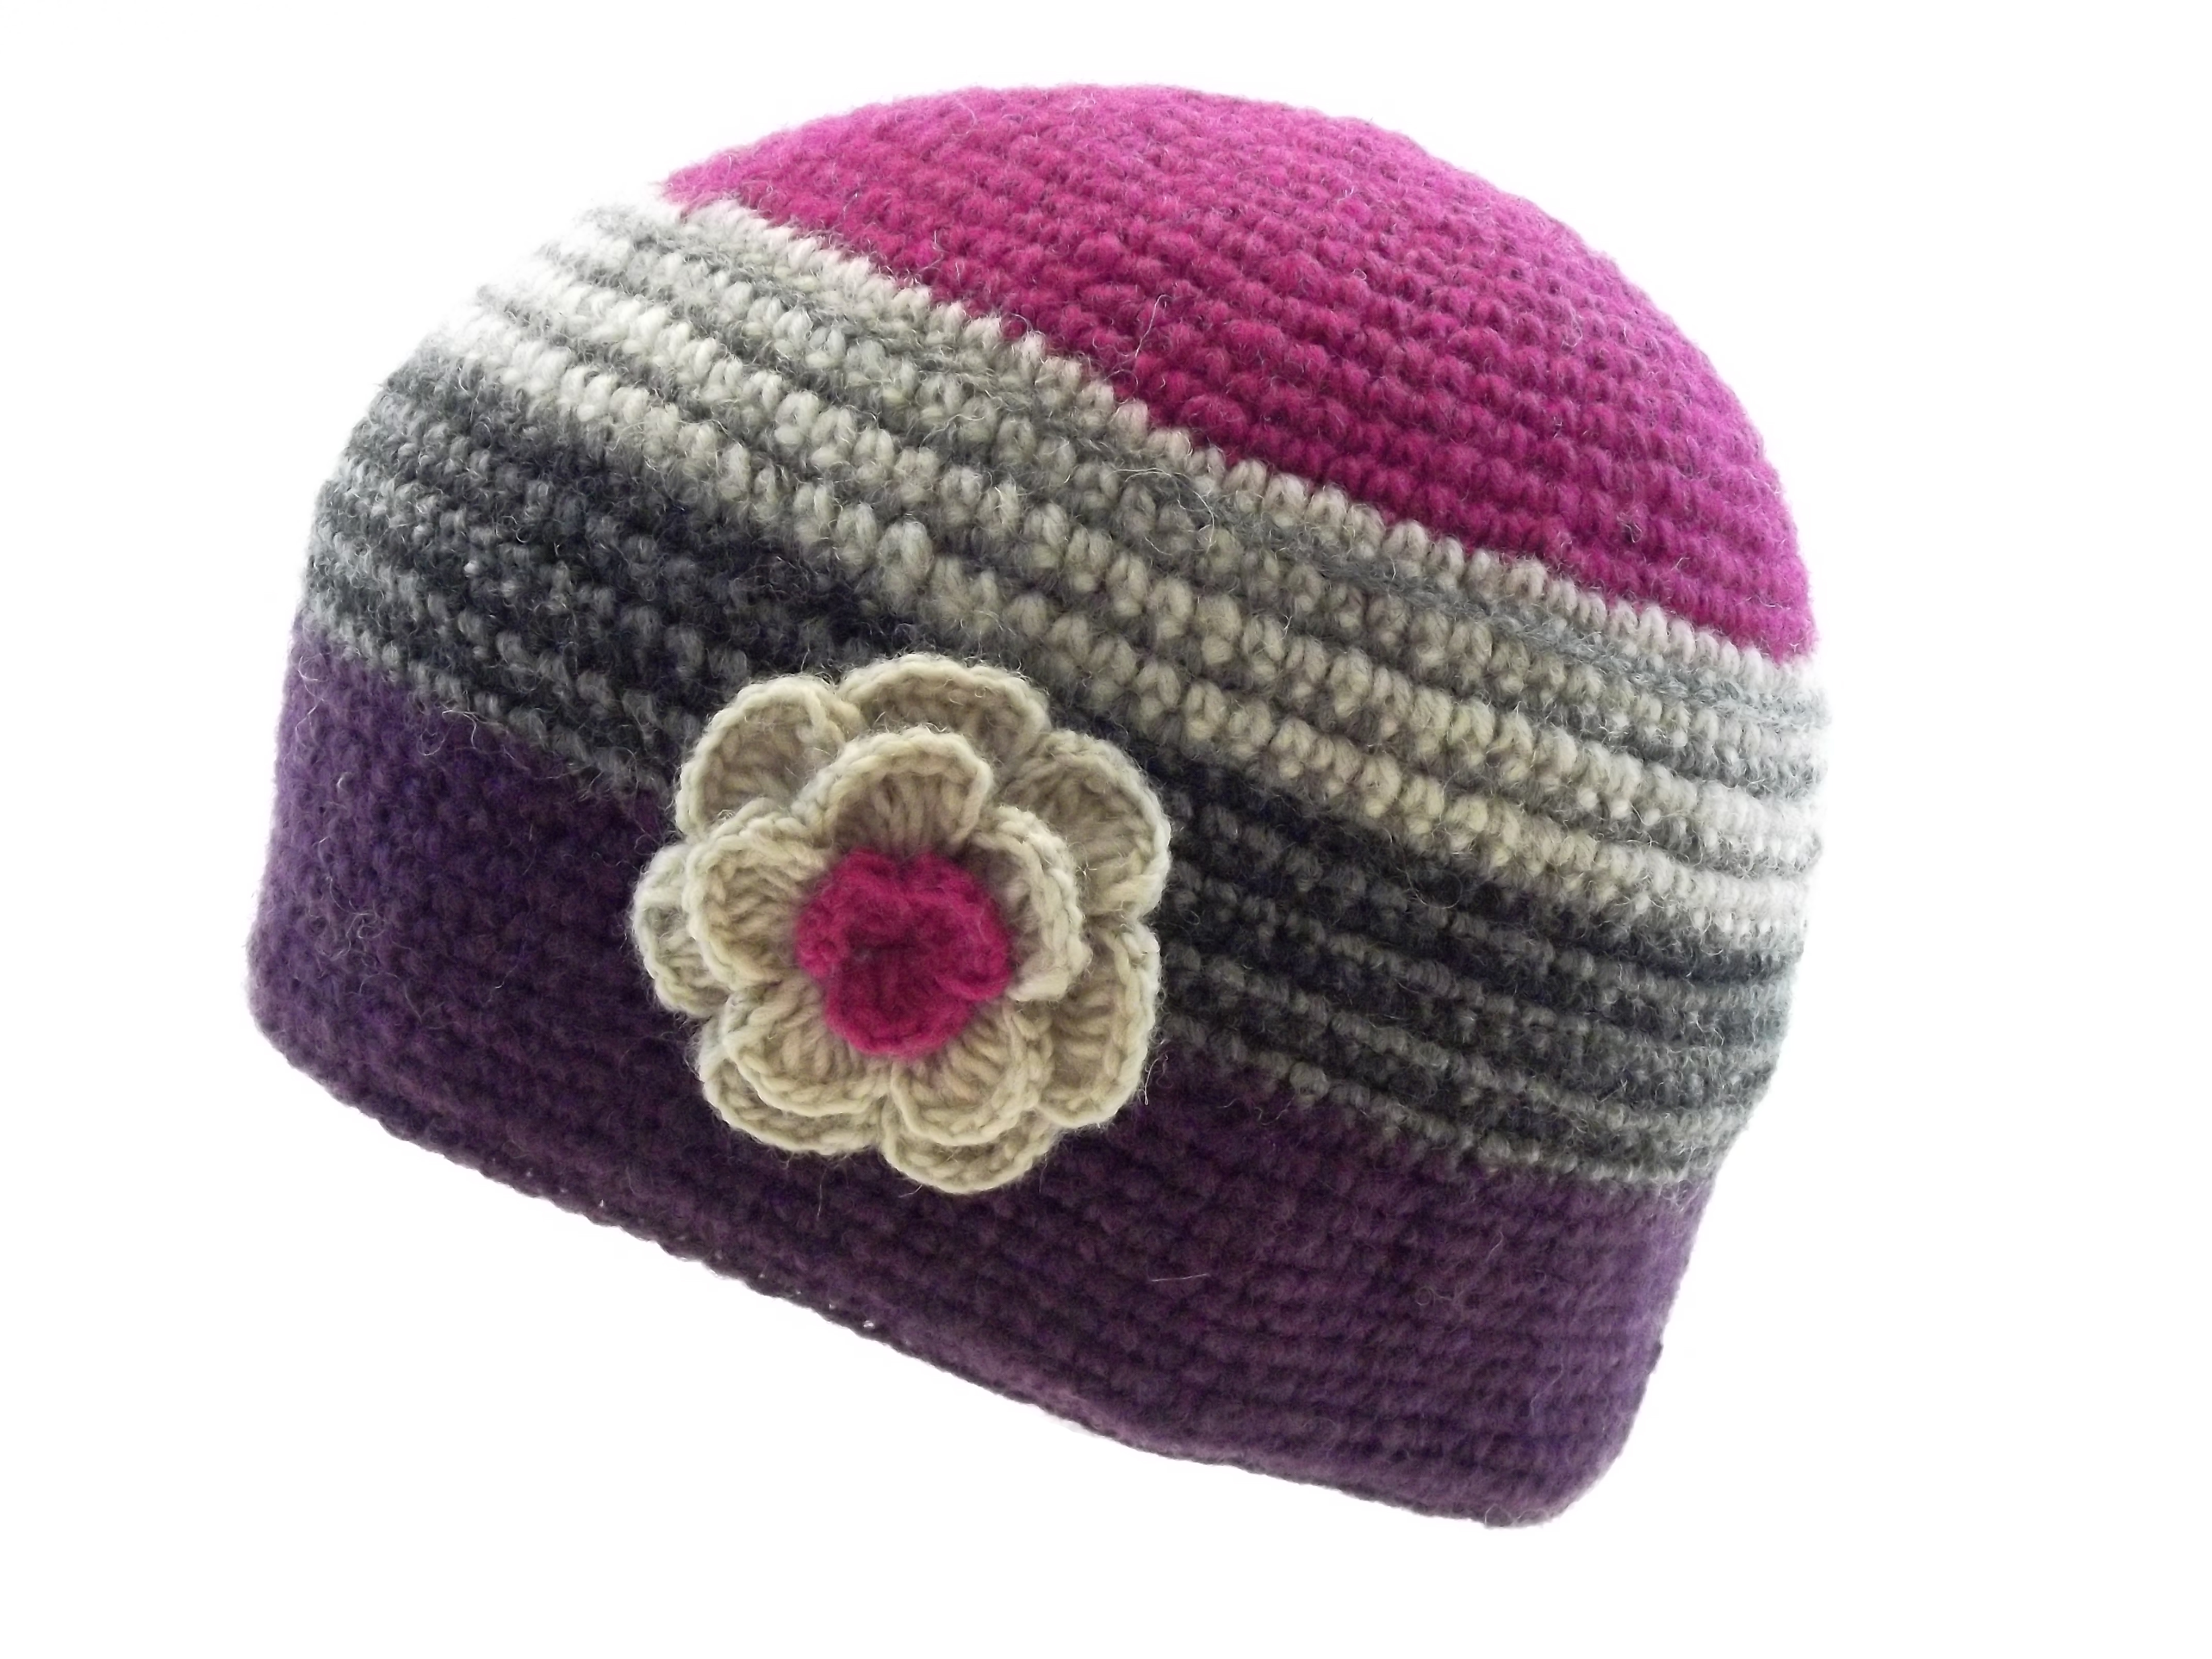 Crochet Cap with Flower Corsage Pink Purple 100% Wool